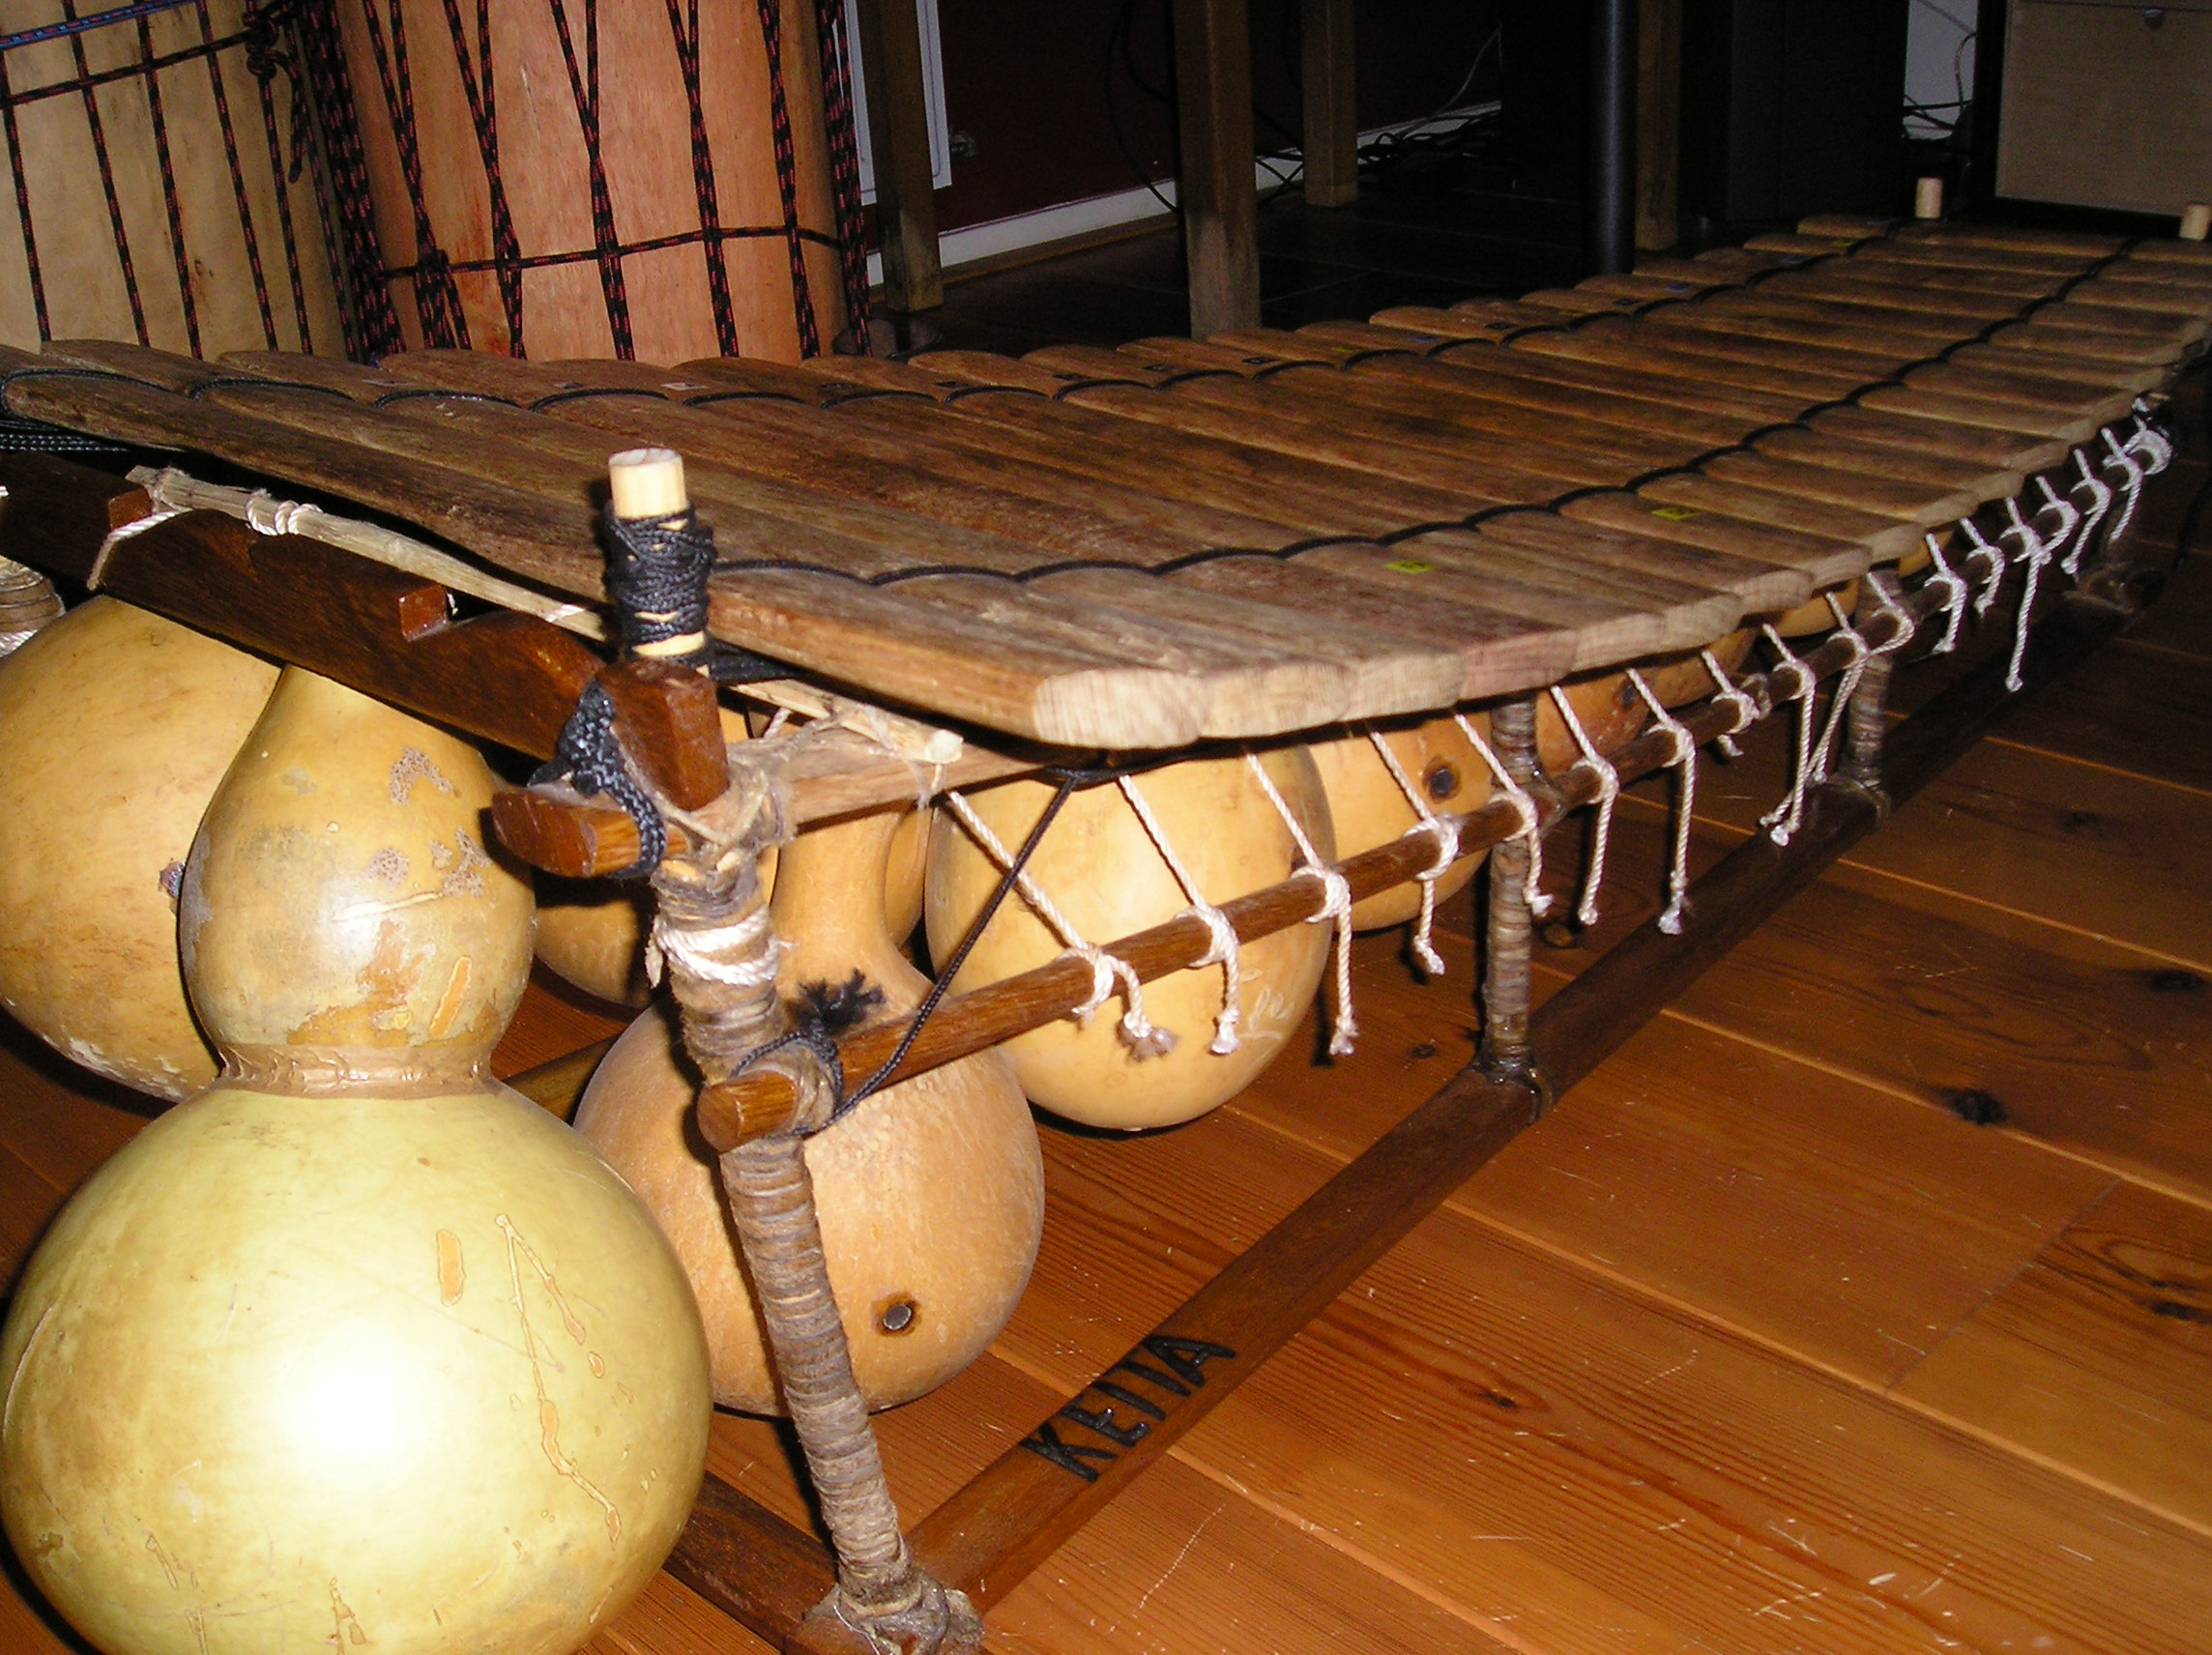 http://upload.wikimedia.org/wikipedia/commons/f/fd/Balafoon.jpg